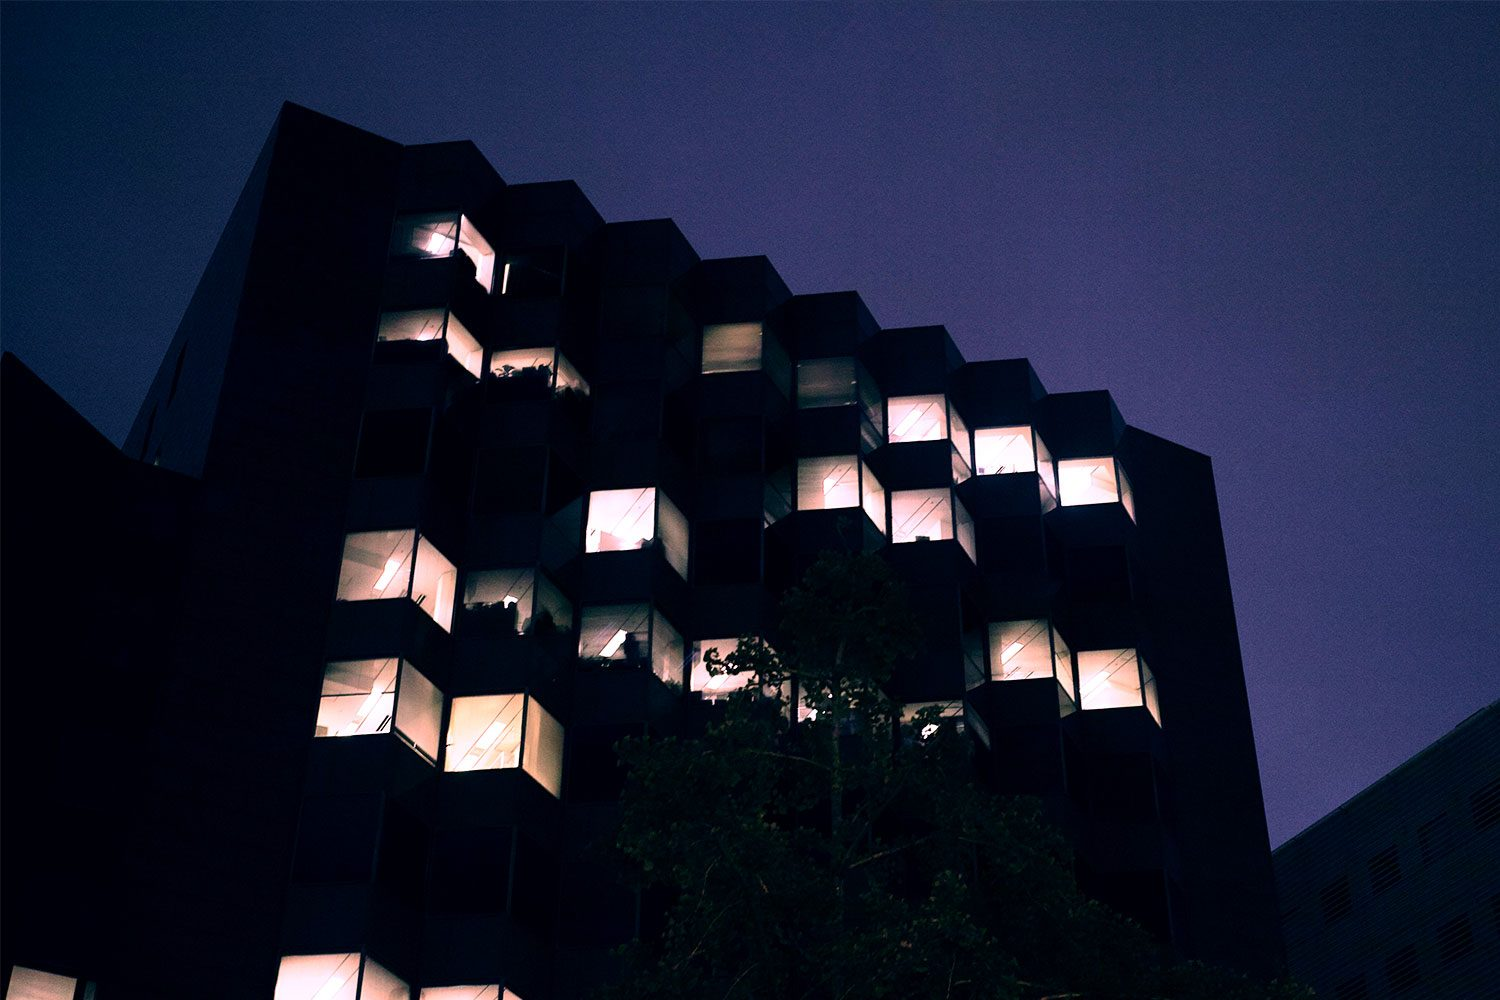 osakabynight_japan_thevoyageur003